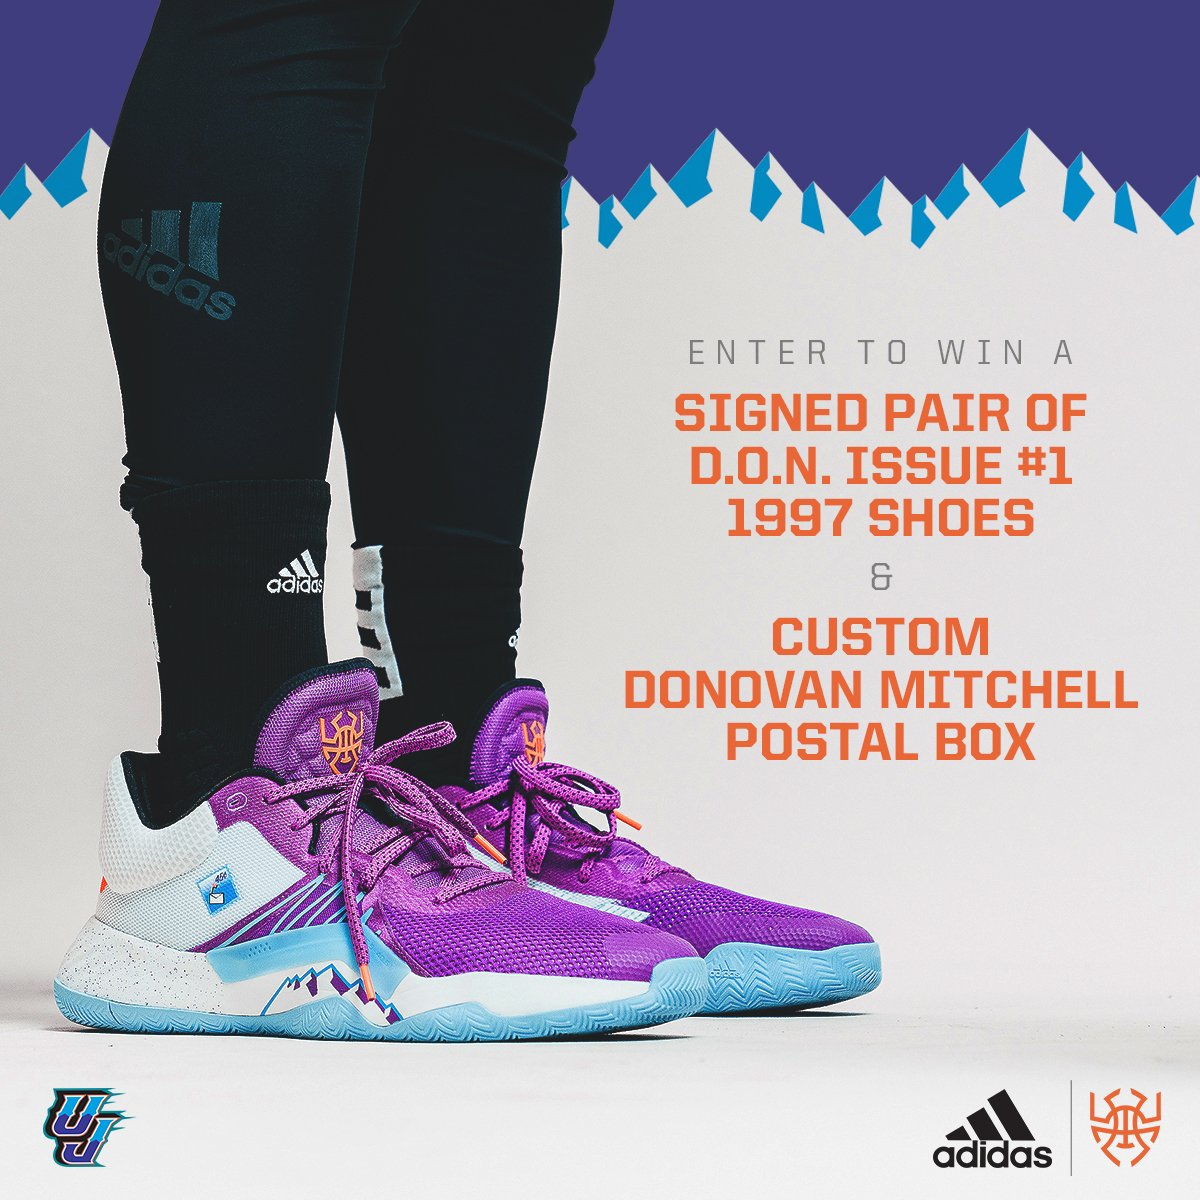 Win a signed pair of D.O.N. Issue #1 1997 shoes and a custom Donovan Mitchell postal box.  To enter: - share your determination over negativity stories on social - tag @utahjazz @adidasHoops @spidadmitchell - use the hashtag #myDONstory